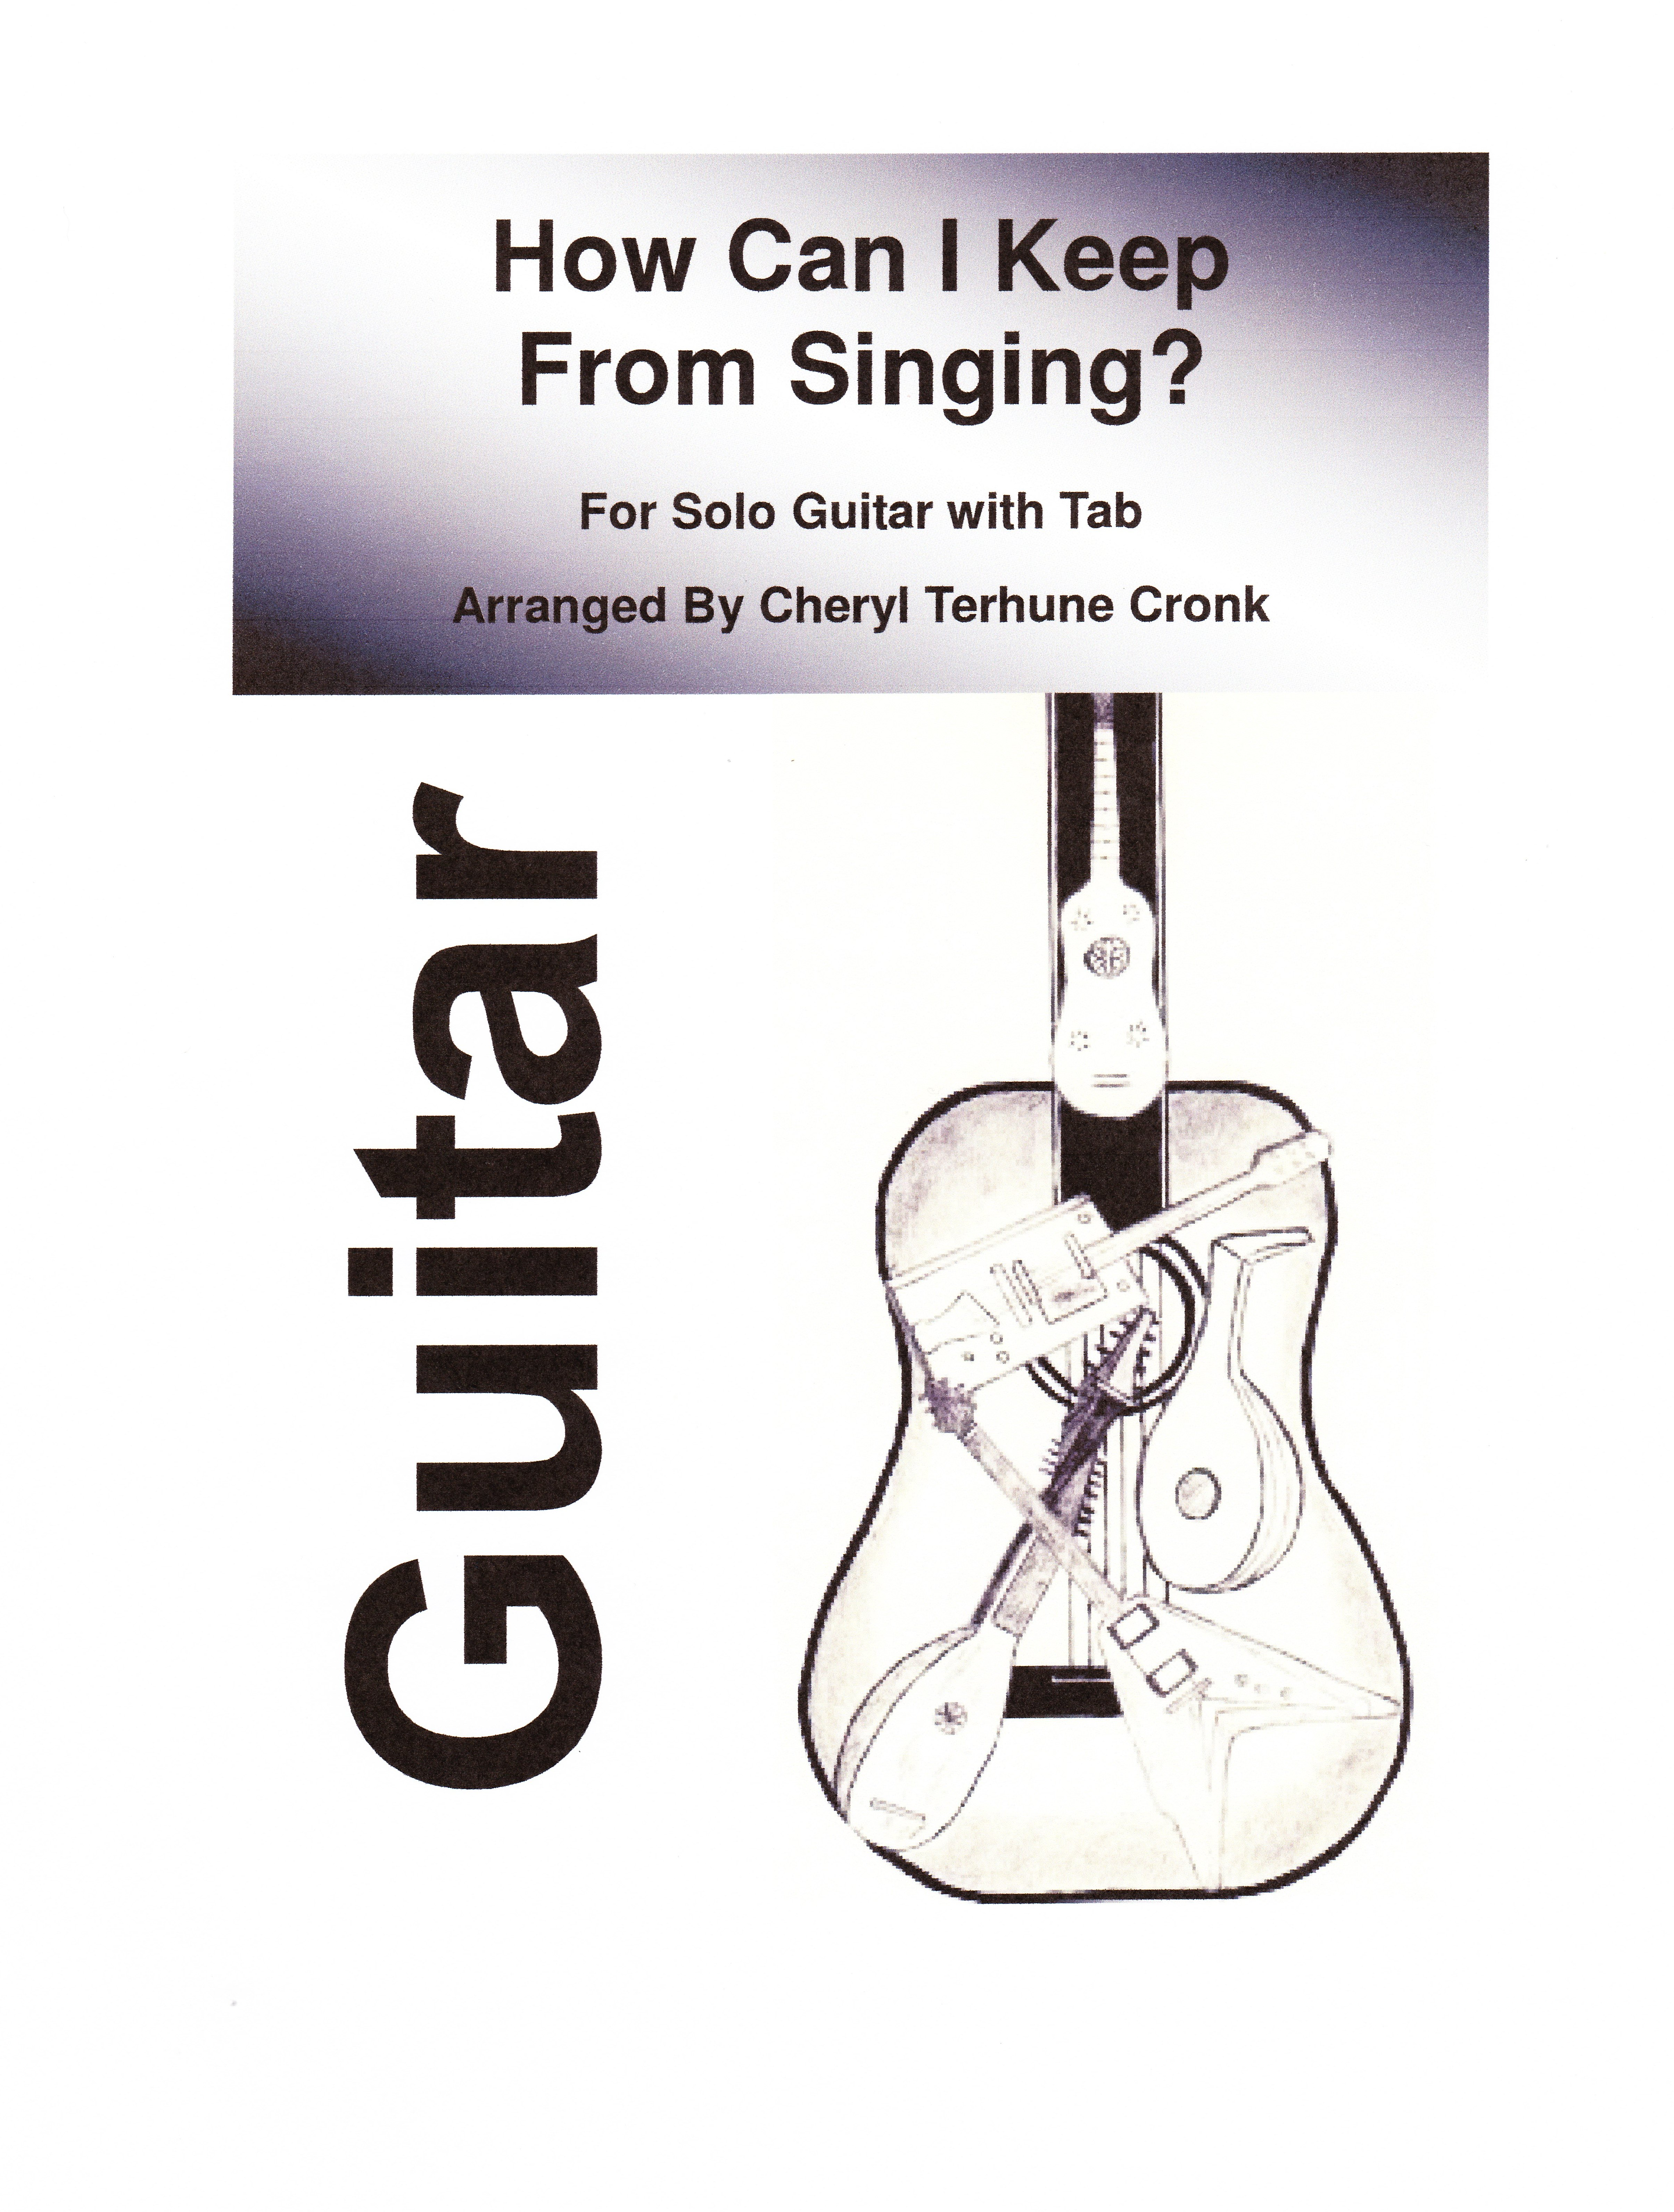 'How Can I Keep From Singing' for solo guitar